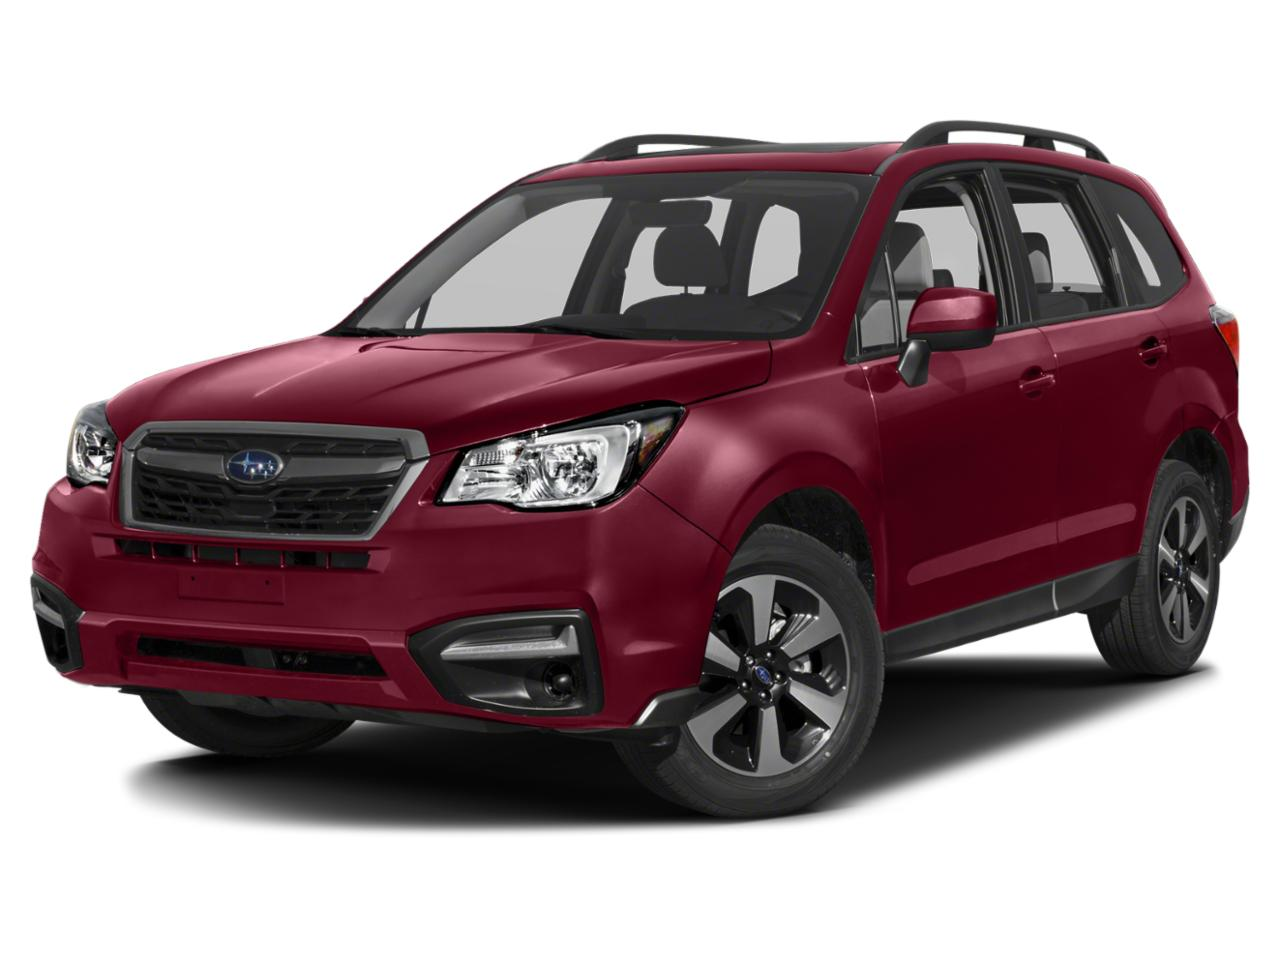 2018 Subaru Forester Vehicle Photo in Smyrna, GA 30080